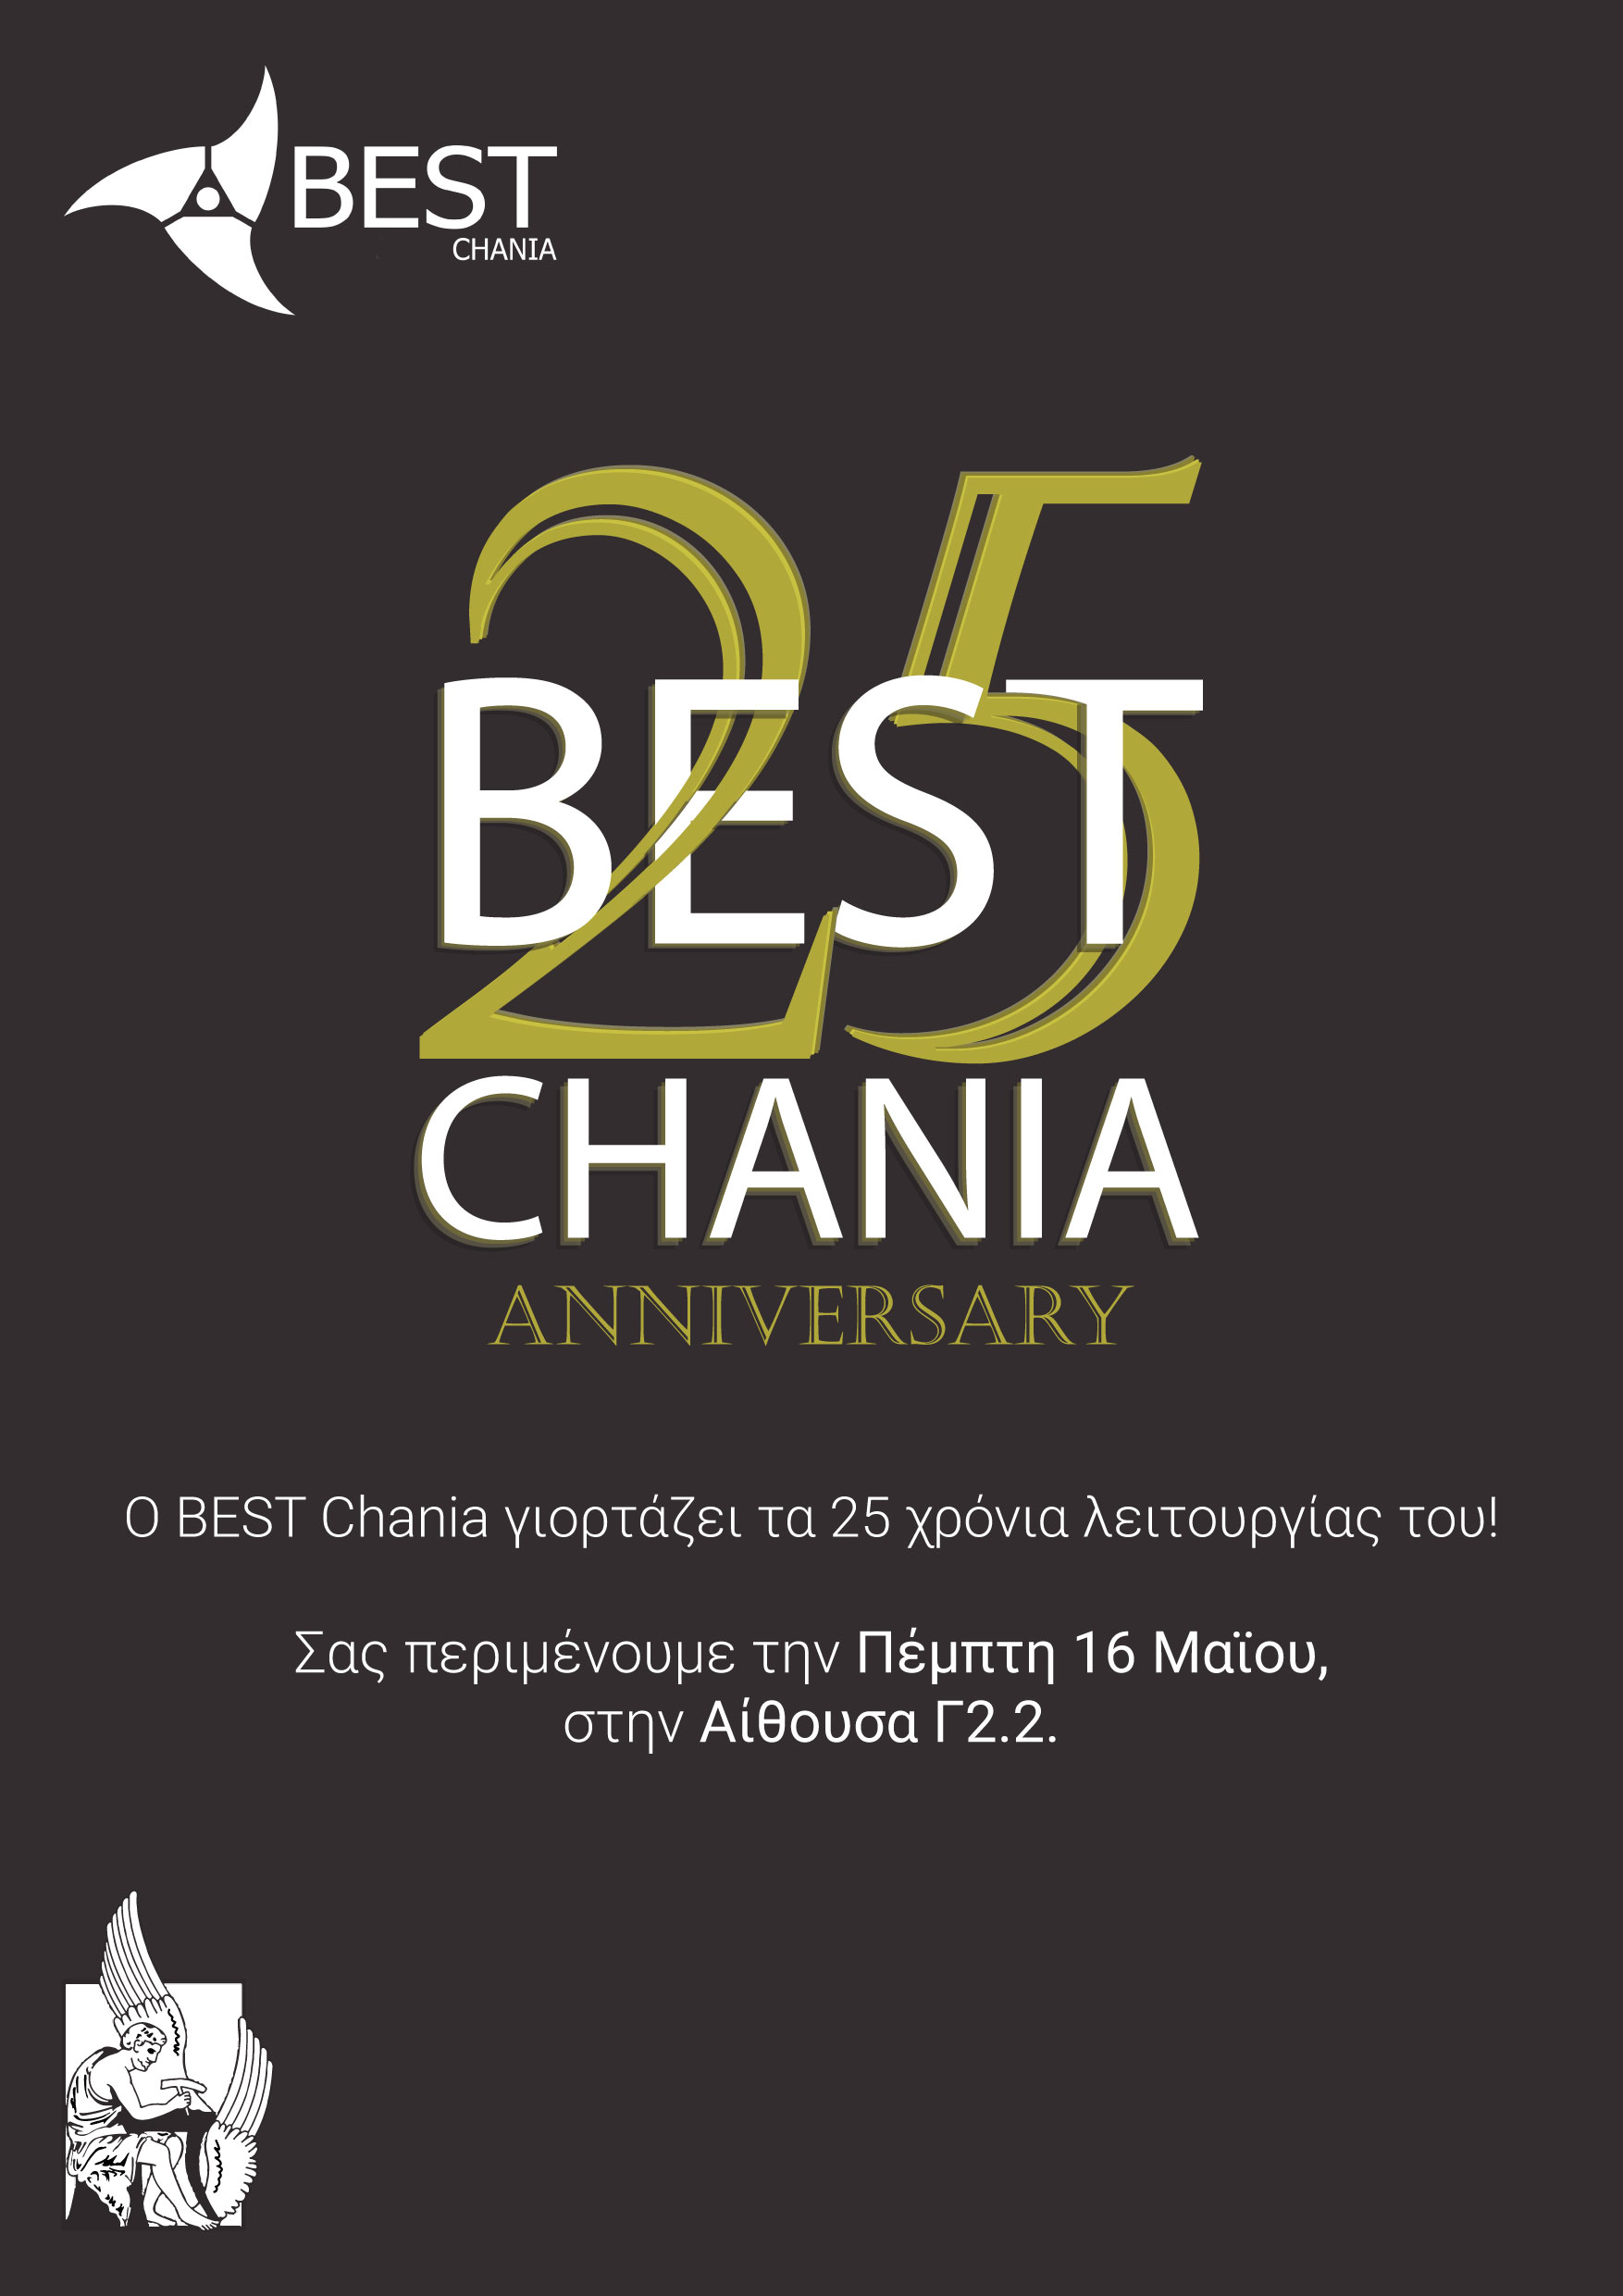 25th Anniversary of BEST Chania